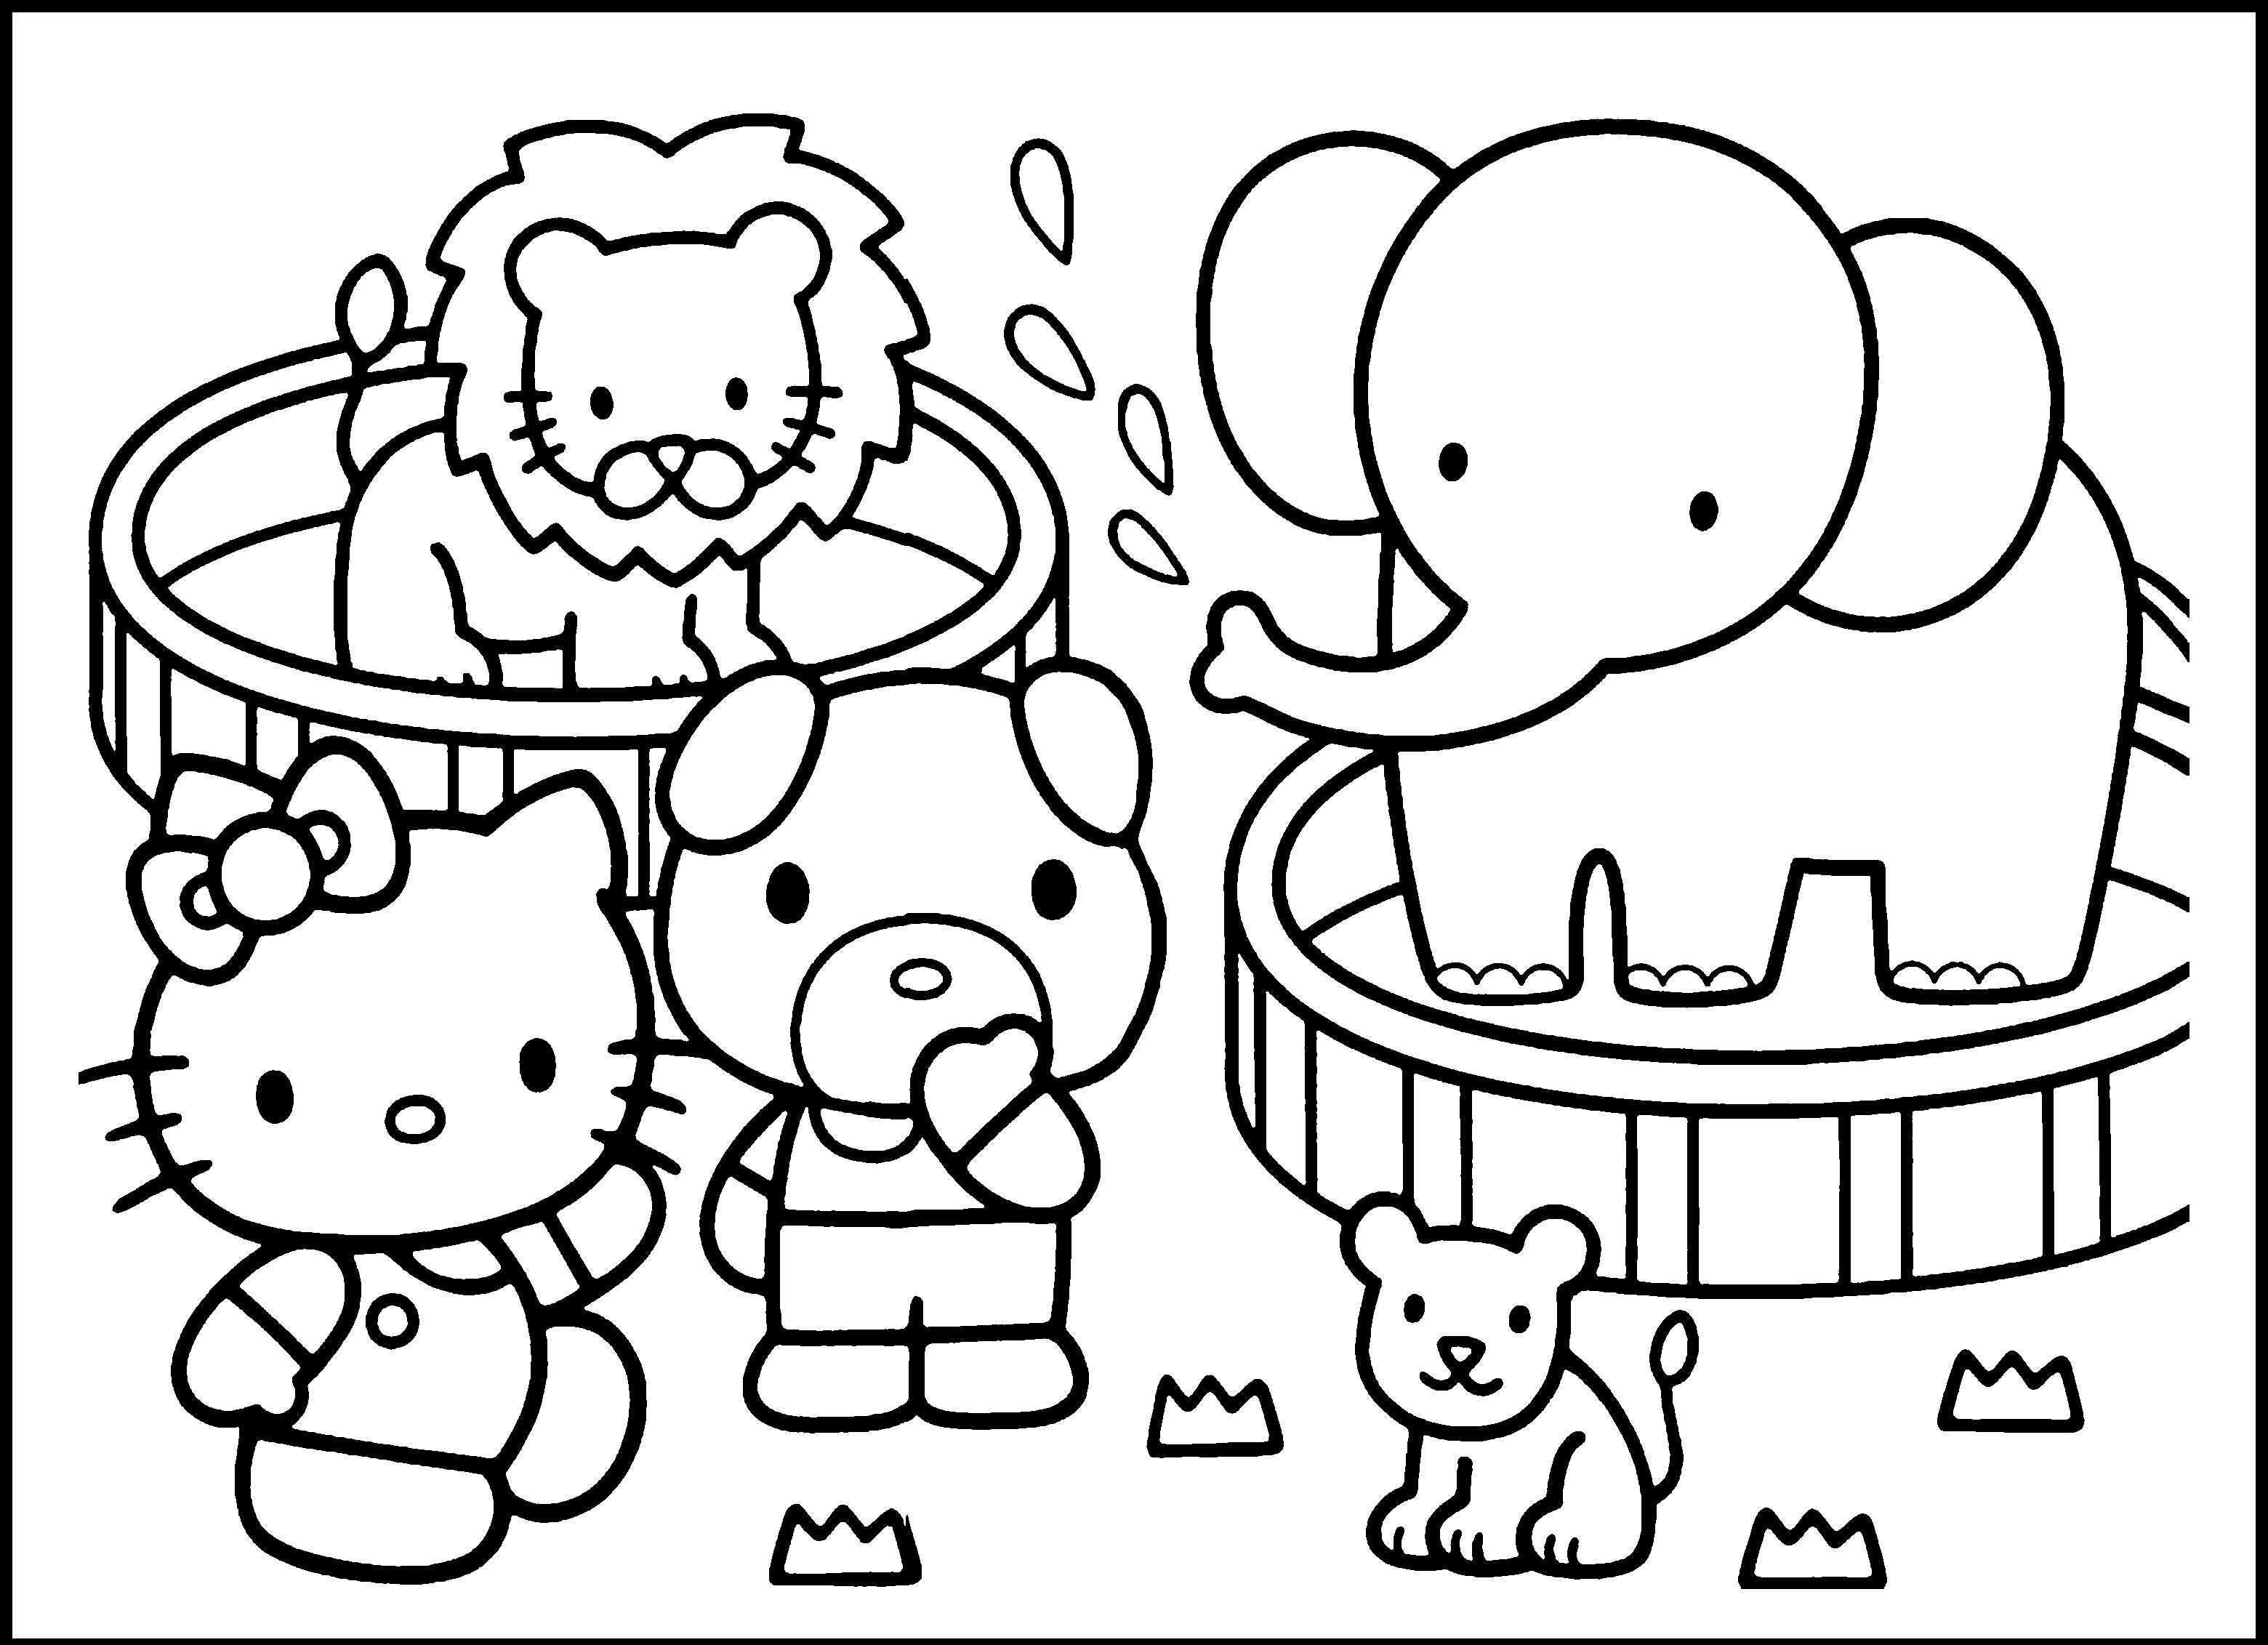 free zoo coloring pages zoo animal coloring pages elegant get this preschool zoo free zoo pages coloring